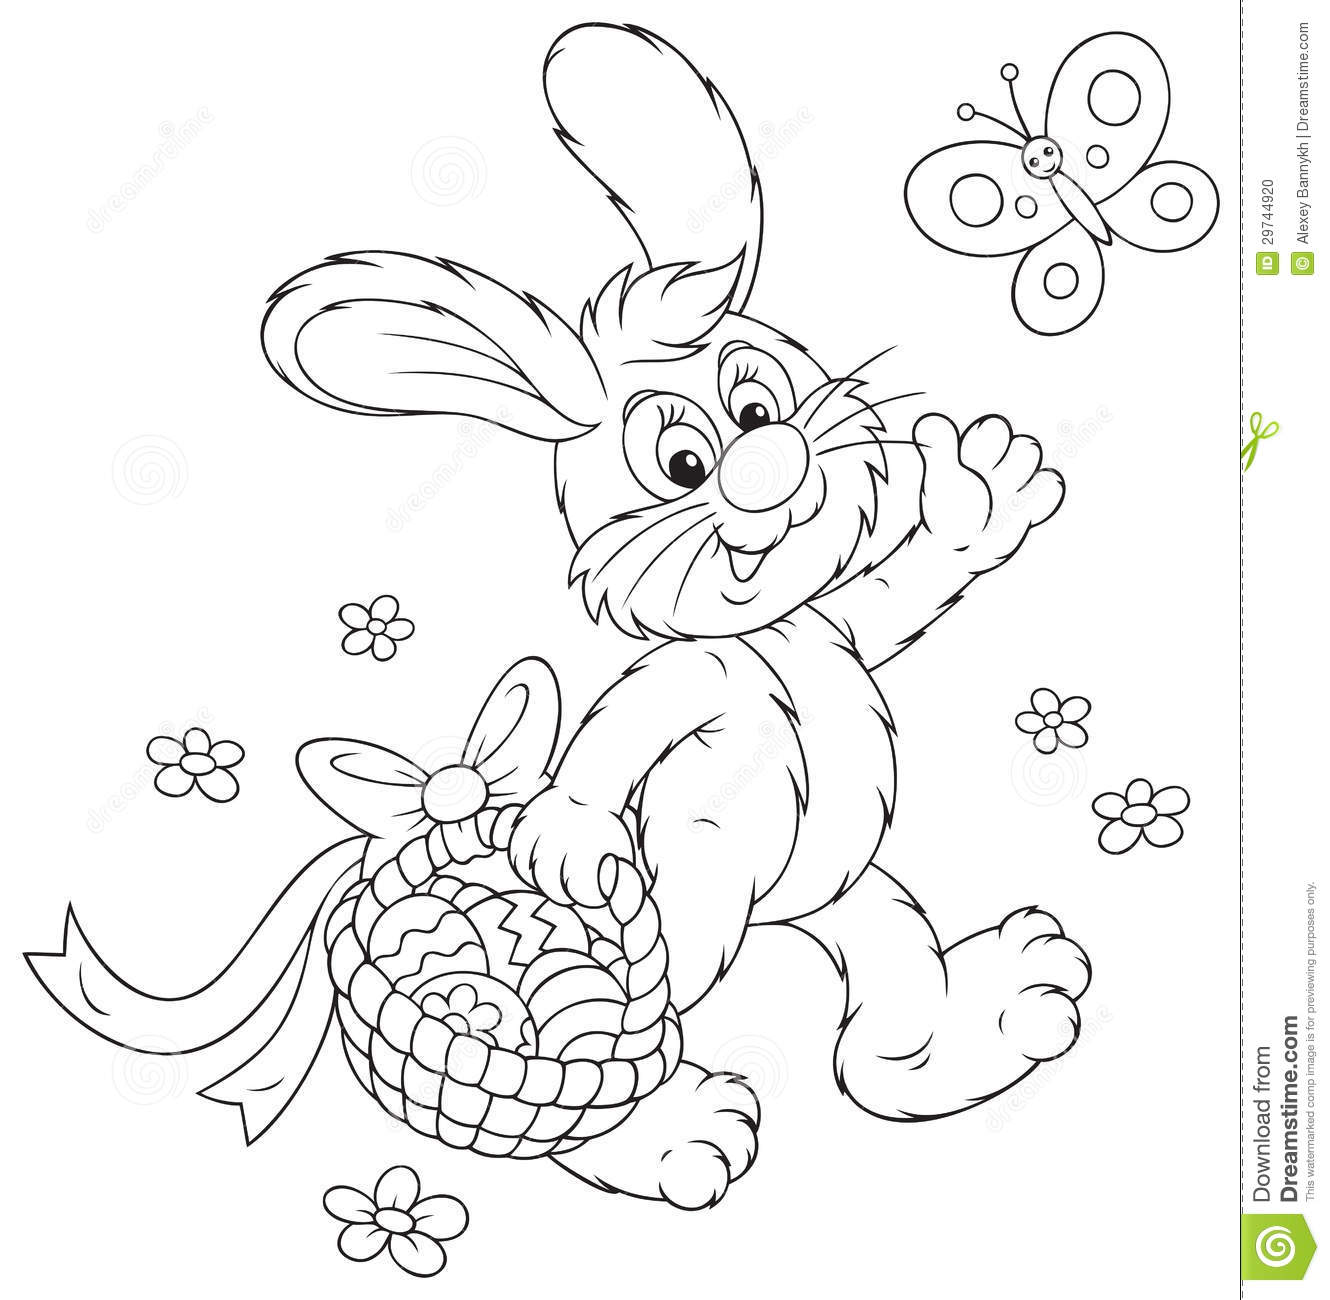 two easter chickens in the egg coloring page royalty free stock